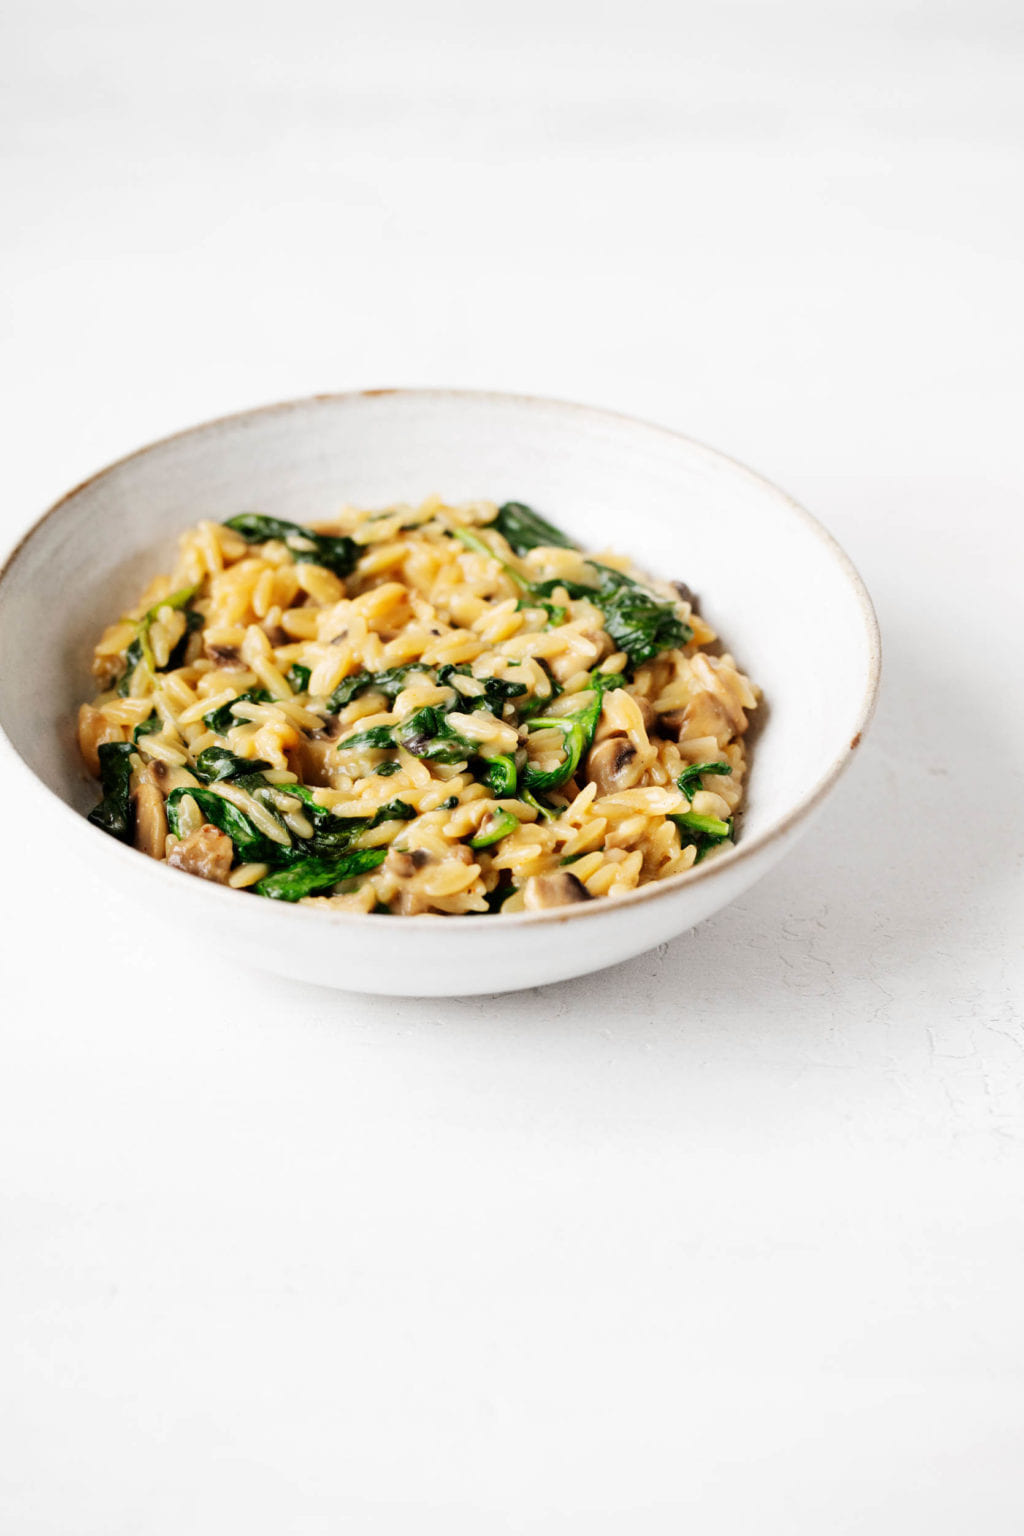 A white bowl with a light brown rim has been filled with a mixture of small pasta and green vegetables.